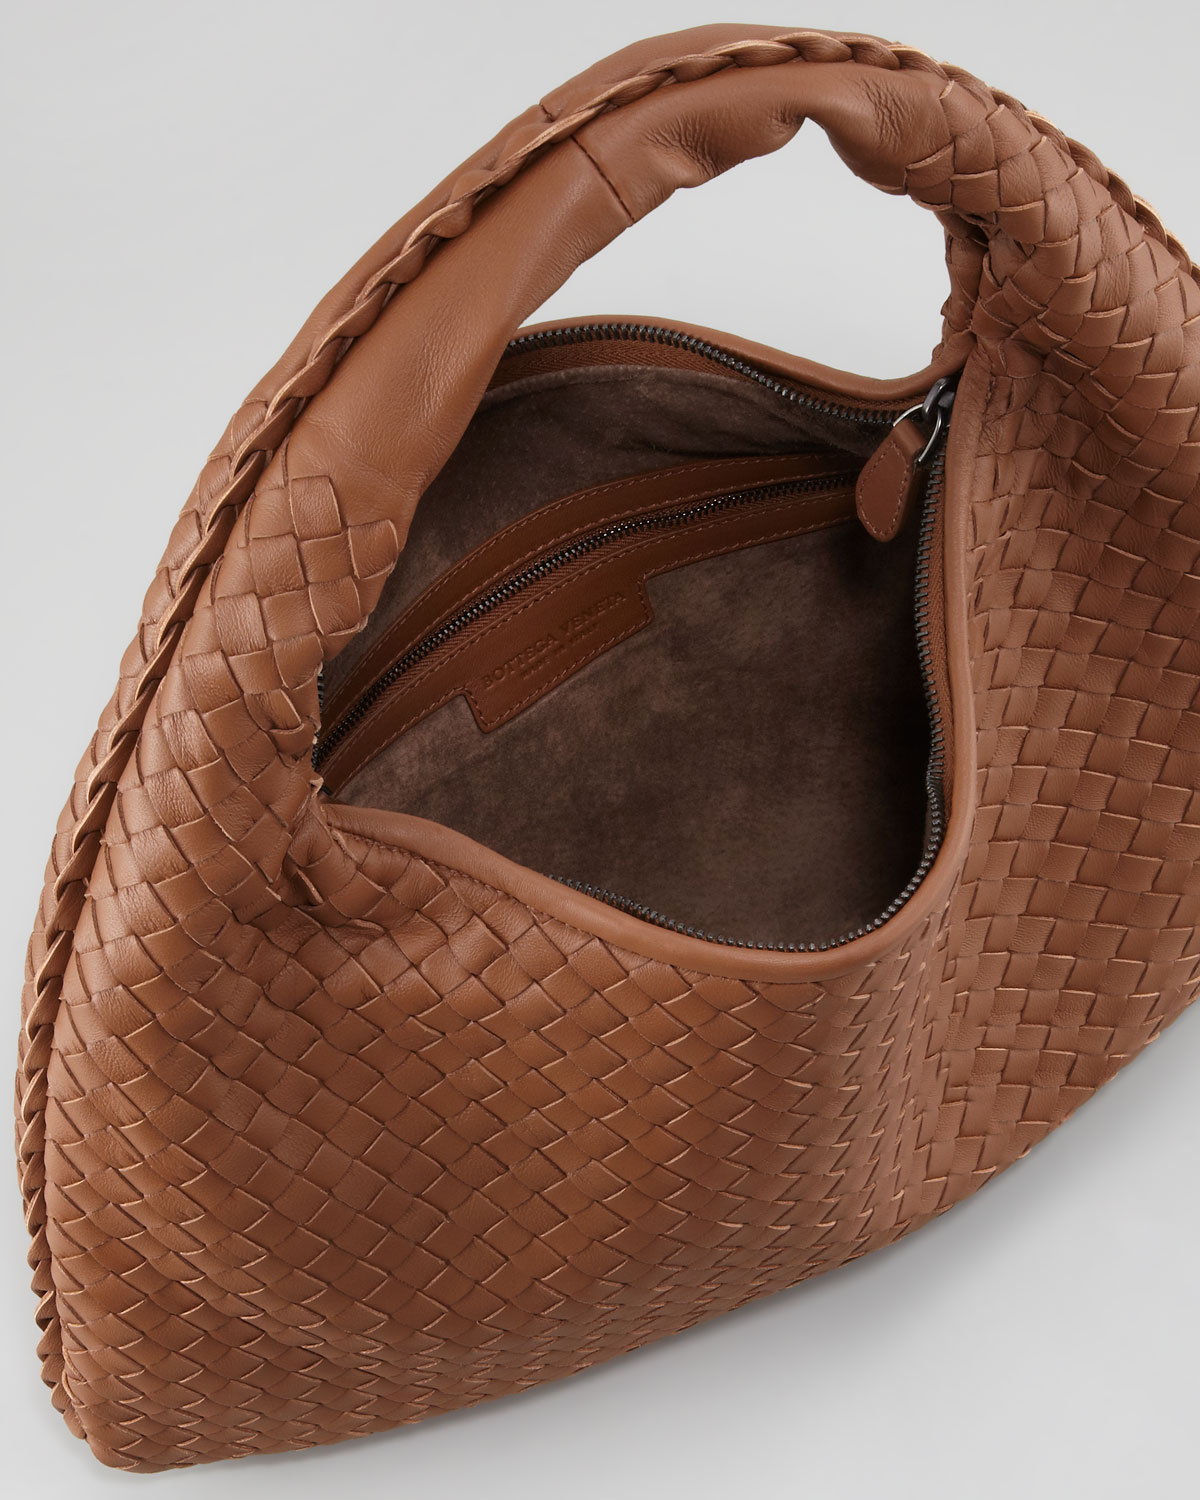 03aacf01b80d Lyst - Bottega Veneta Medium Veneta Hobo Bag Light Brown in Brown